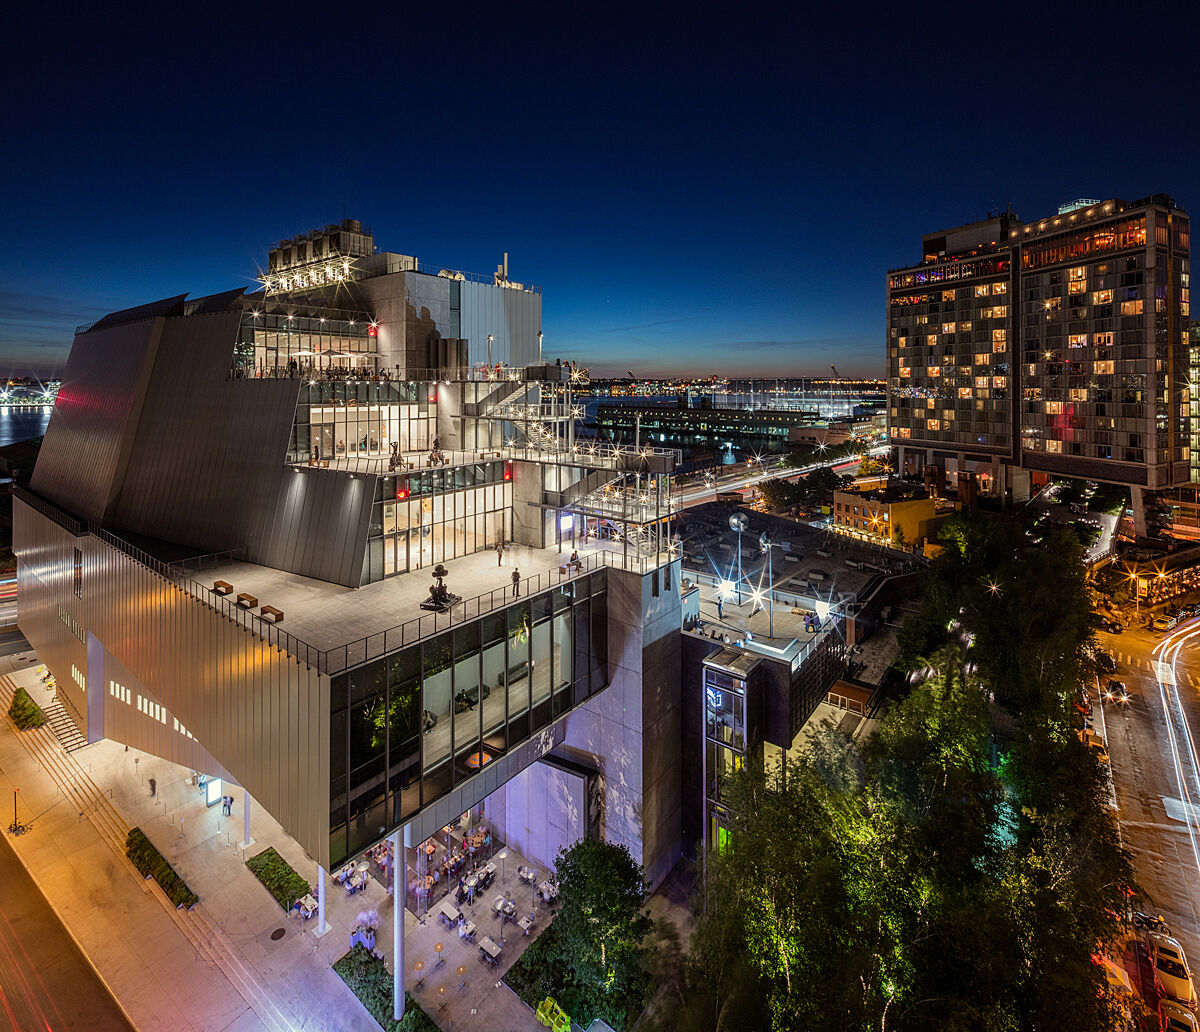 Whitney Museum at night.